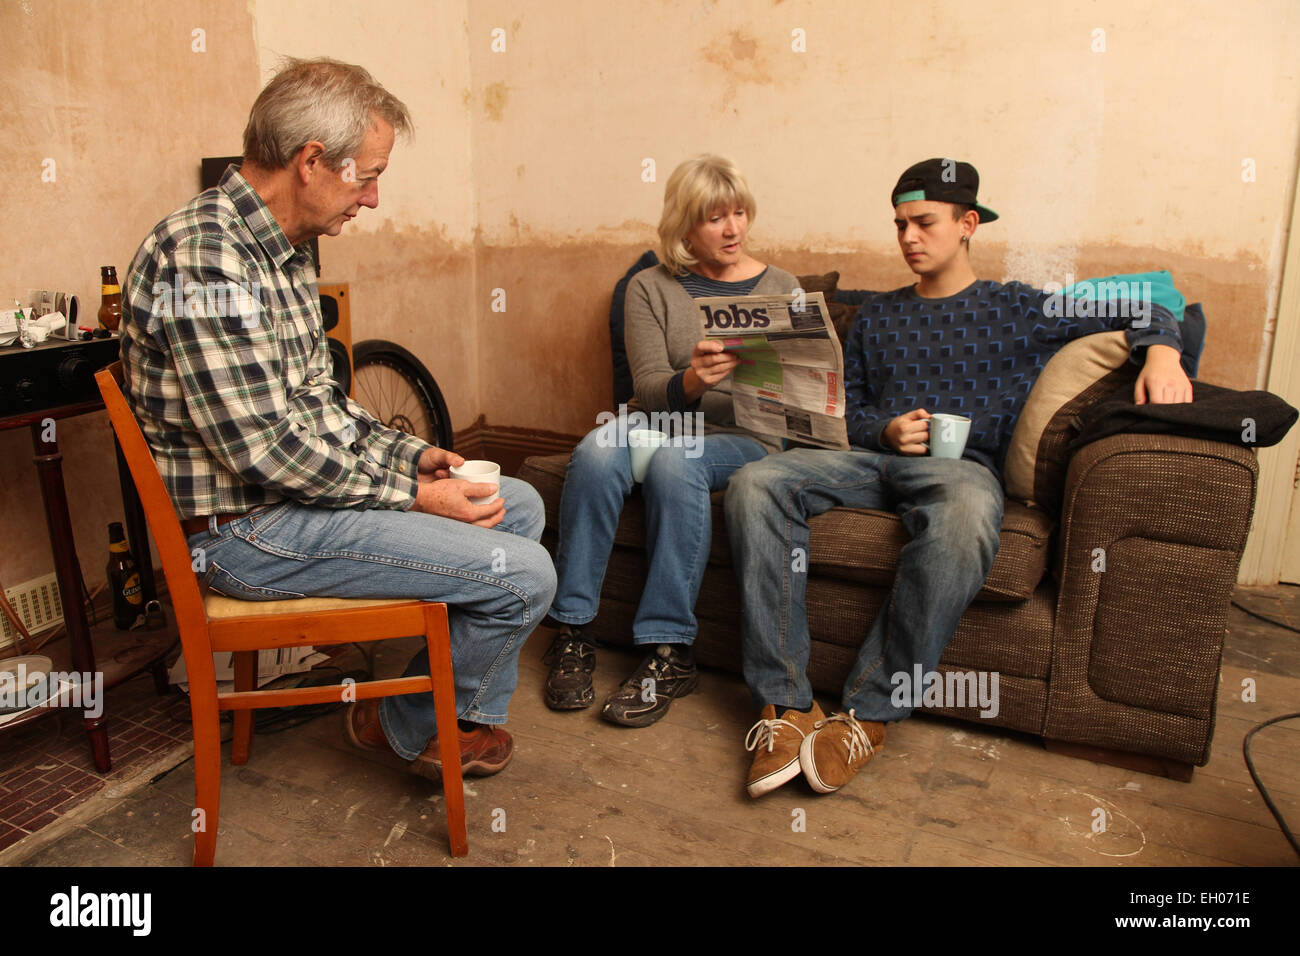 teenager grandparents looking at newspaper for jobs model stock photo teenager grandparents looking at newspaper for jobs model released